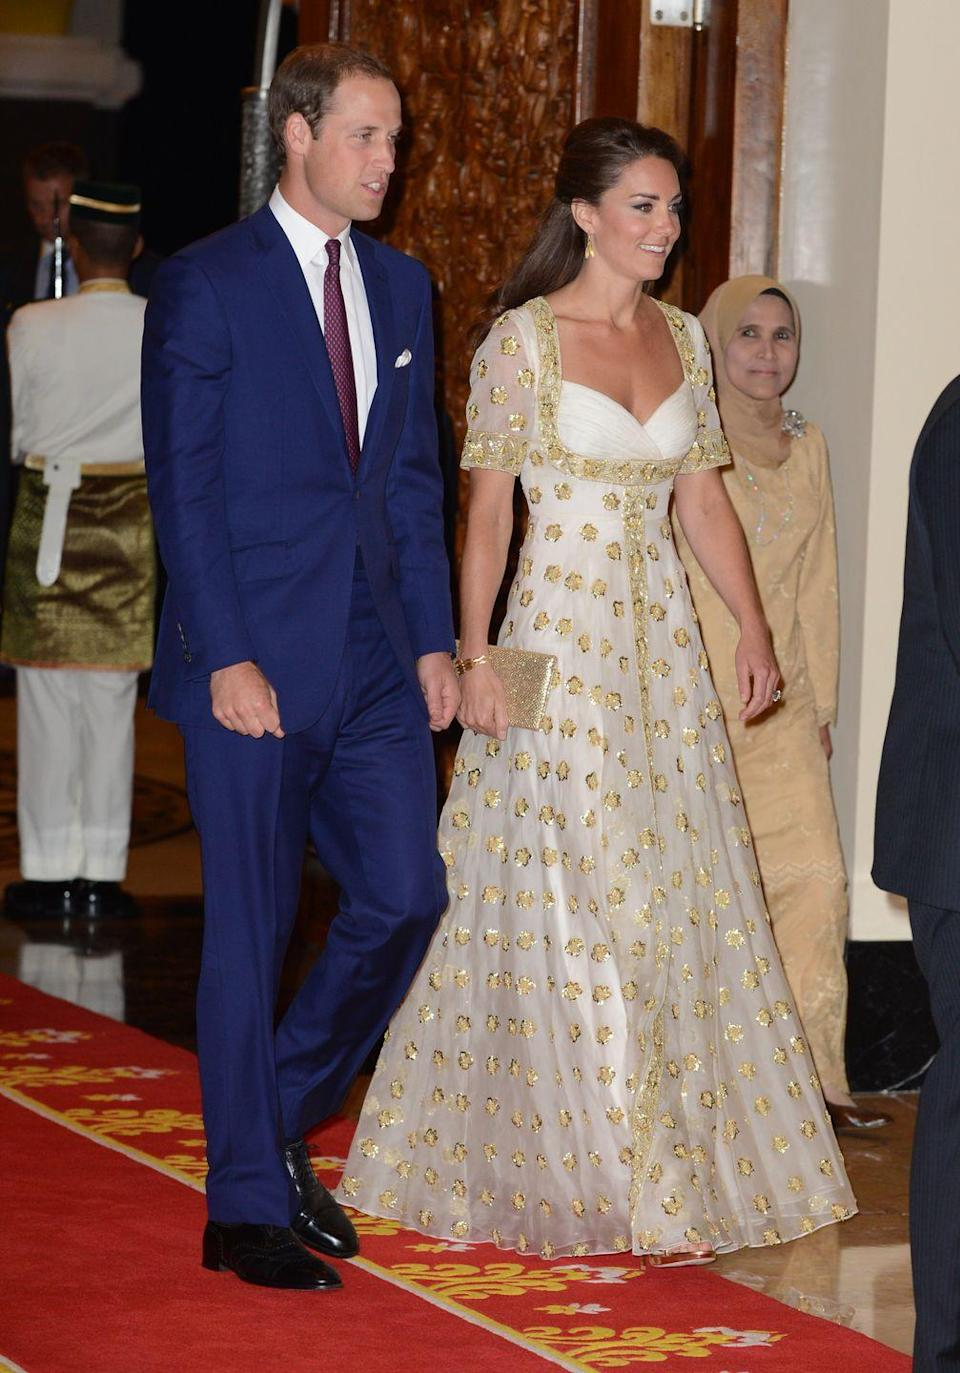 <p>The Duke and Duchess of Cambridge visited Kuala Lumpur, Malaysia as part of the Diamond Jubilee Tour in 2012. Kate wore custom, gilded McQueen to an official dinner hosted by Malaysia's Head of State.</p>